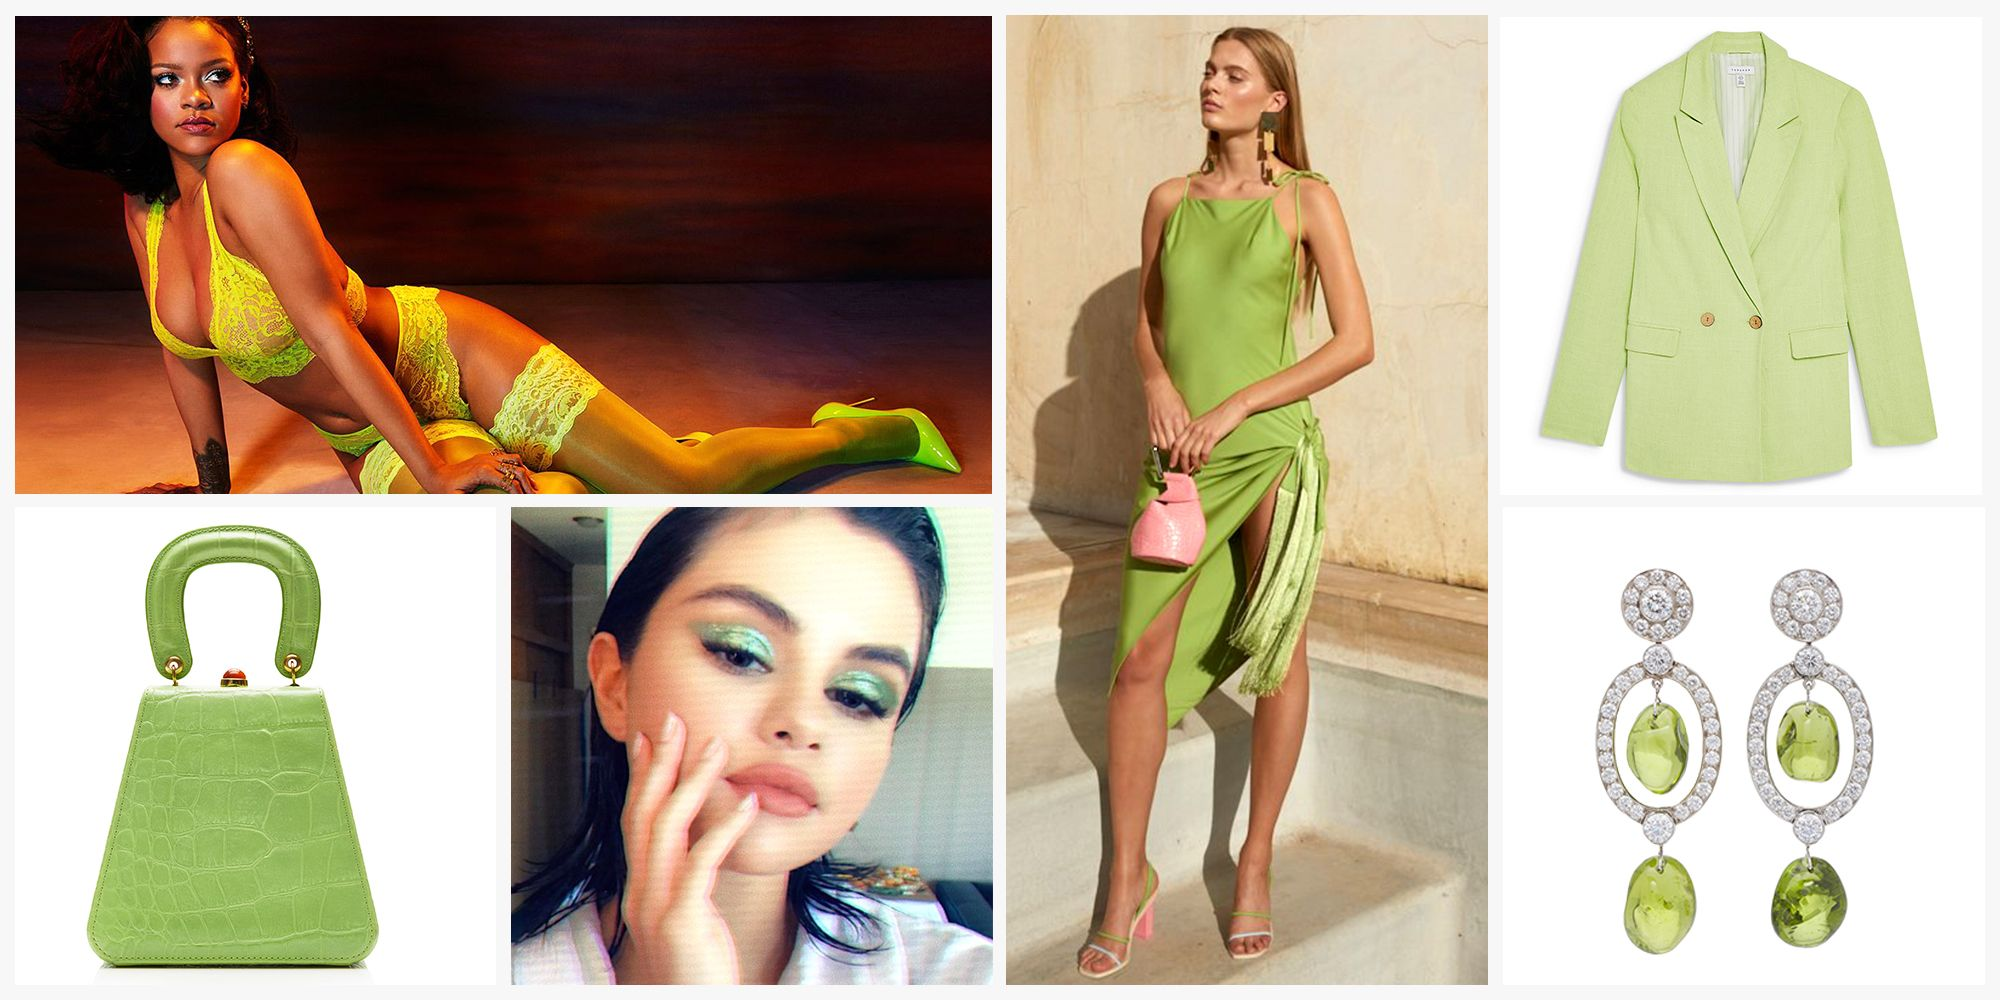 Are Shades of Green the New Millennial Pink?